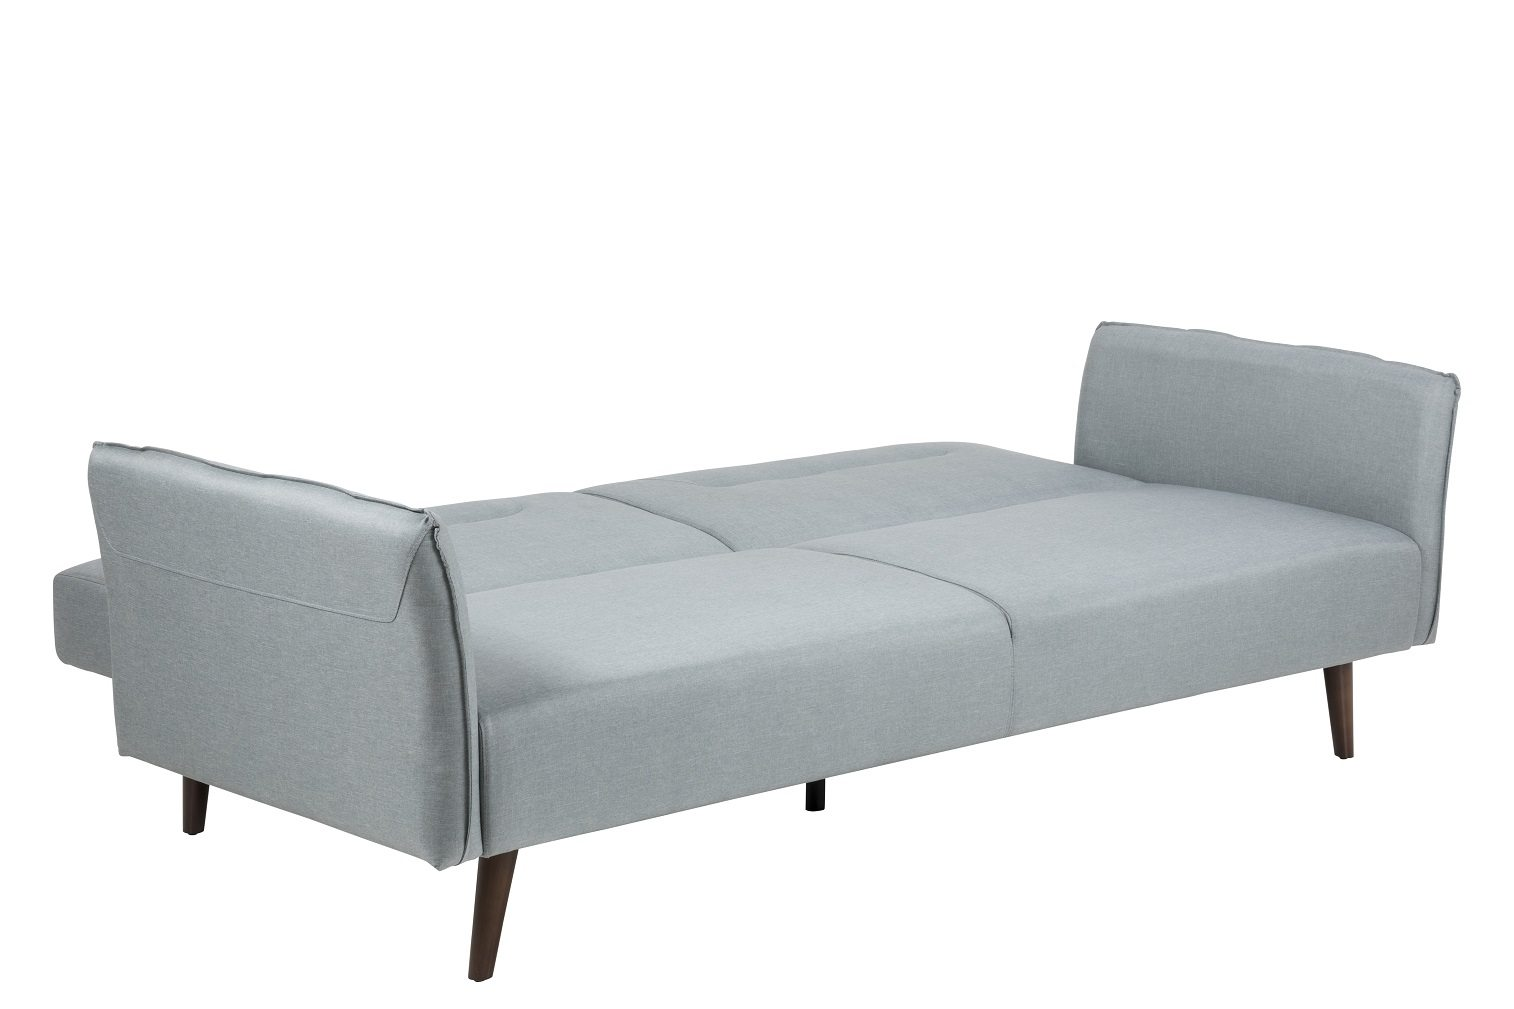 diano-sofa-bed-3